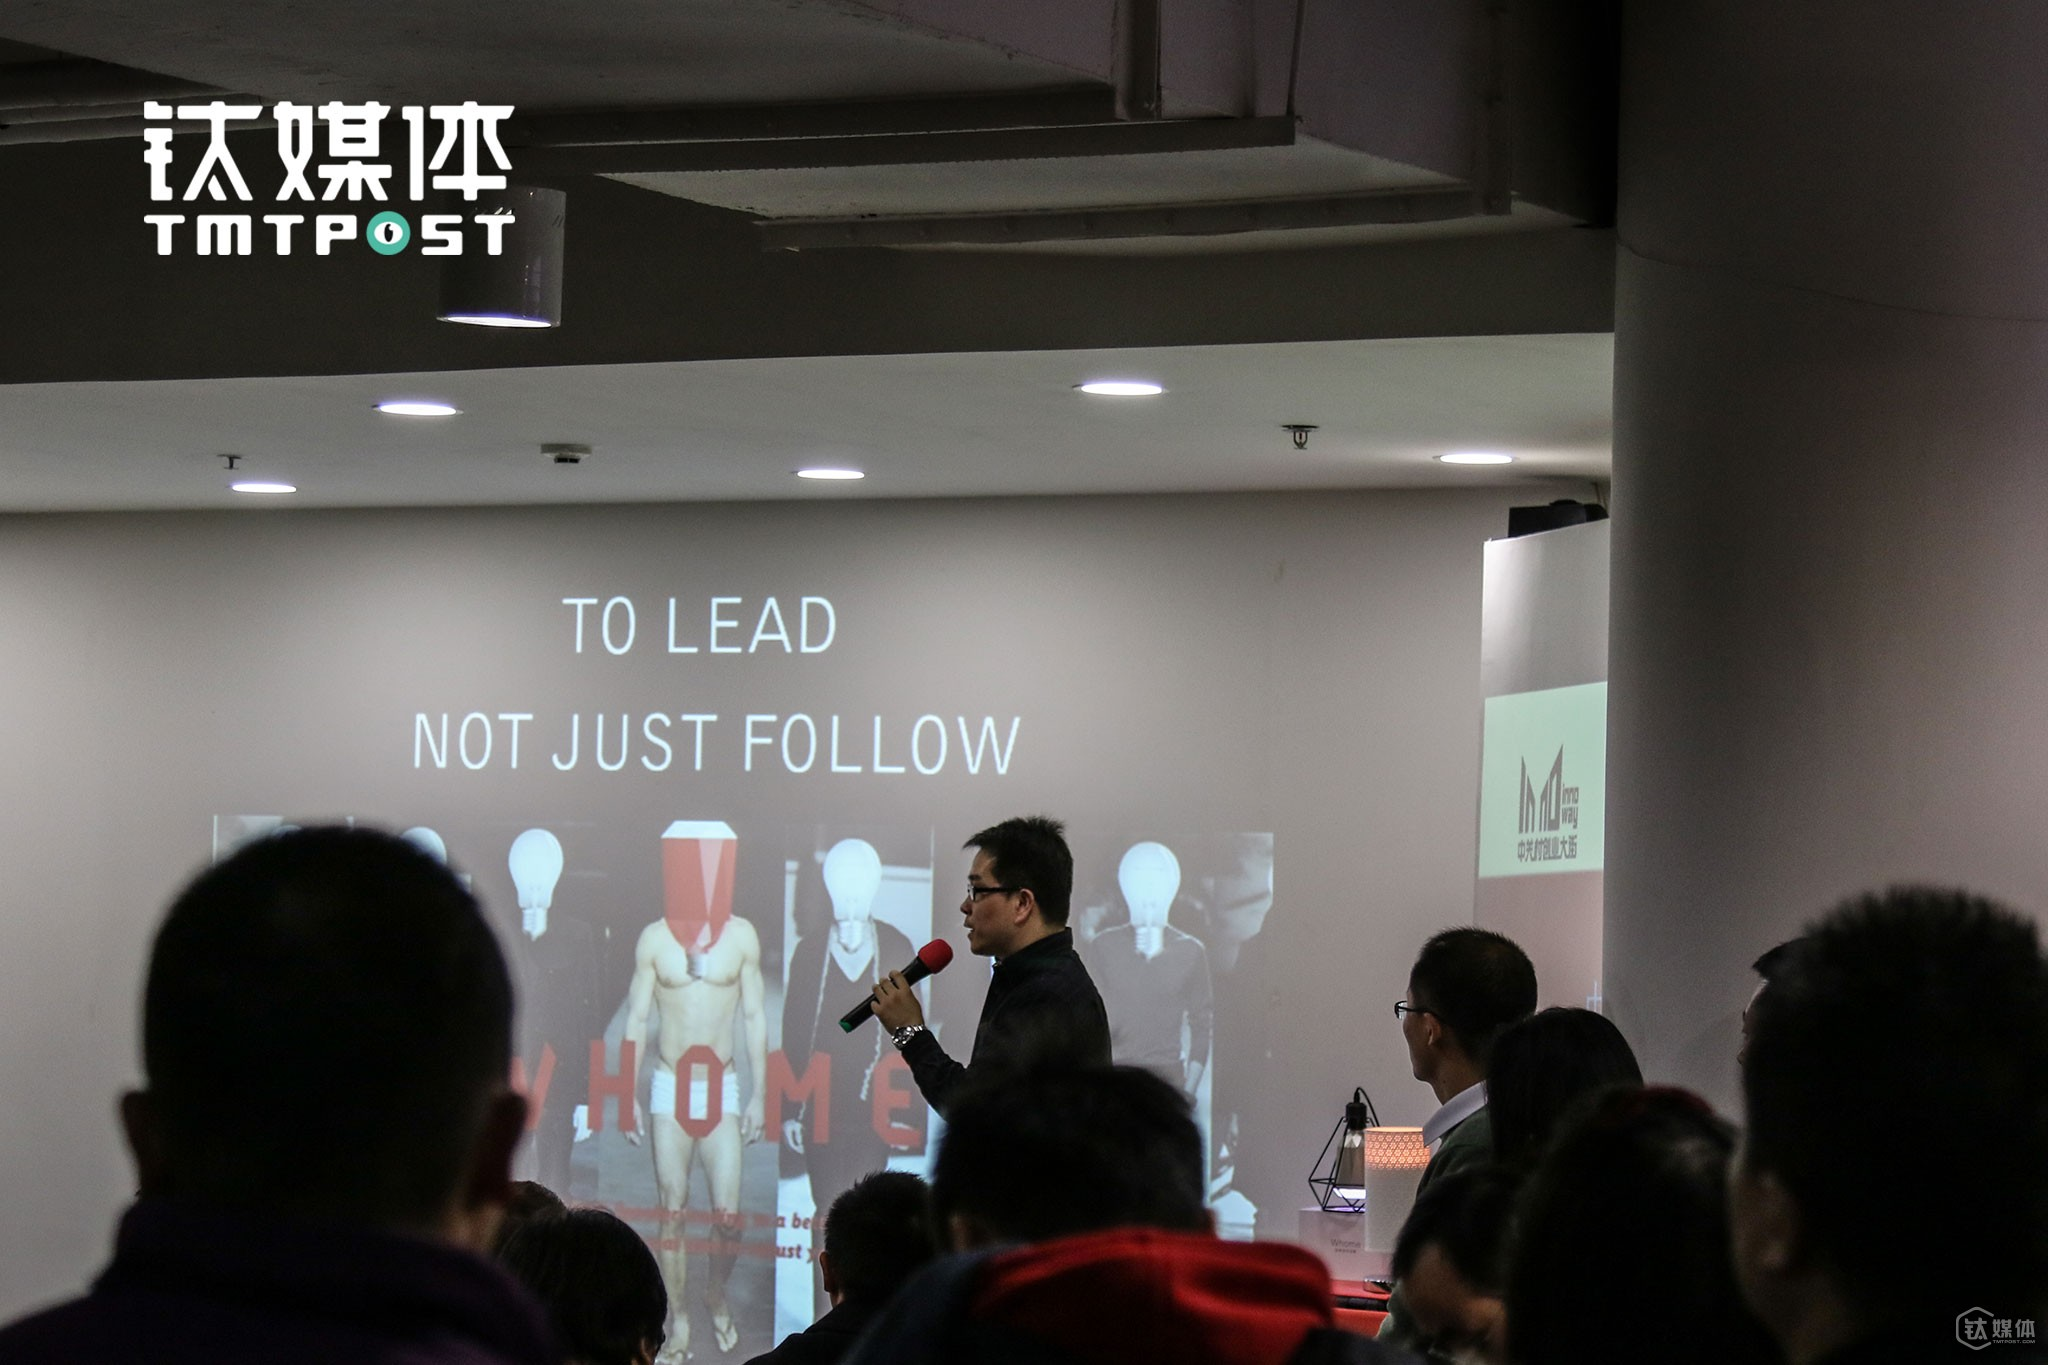 It was December, 15th, 2015. An entrepreneur was giving a roadshow at Zhongguan Village. Up till now, Zhongguan Village has already gathered over 10,000 tech companies. New startups are established, while old ones went bankrupt every day here. The fad for innovation and entrepreneurship in China entered into climax when Premier Li Keqiang paid a visit to InnoWay in May, 2015.